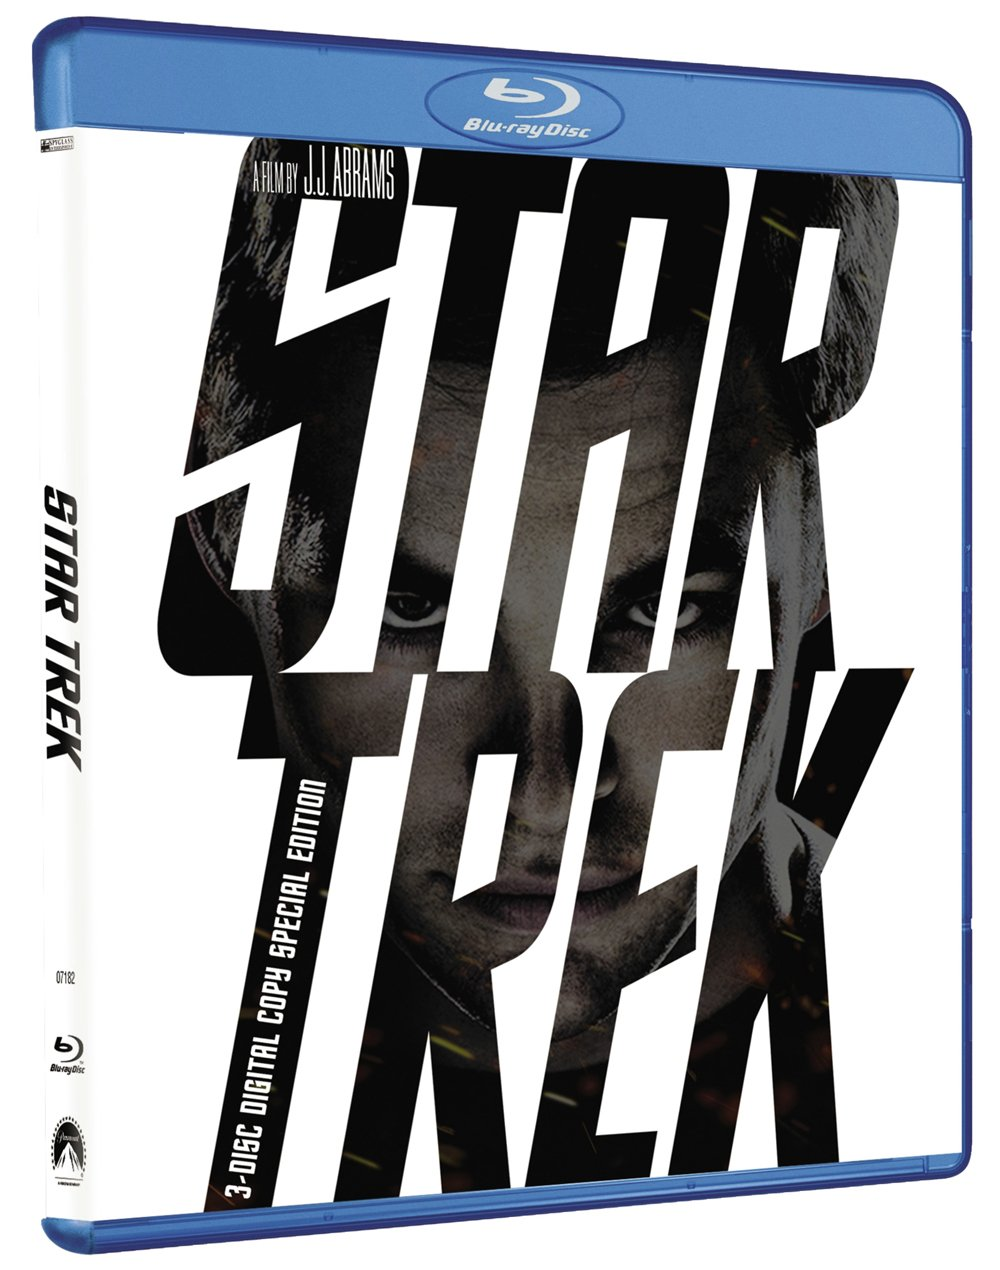 Paramount Star Trek Xi [blu-ray 3 Discs with Digital Copy] by PARAMOUNT HOME VIDEO